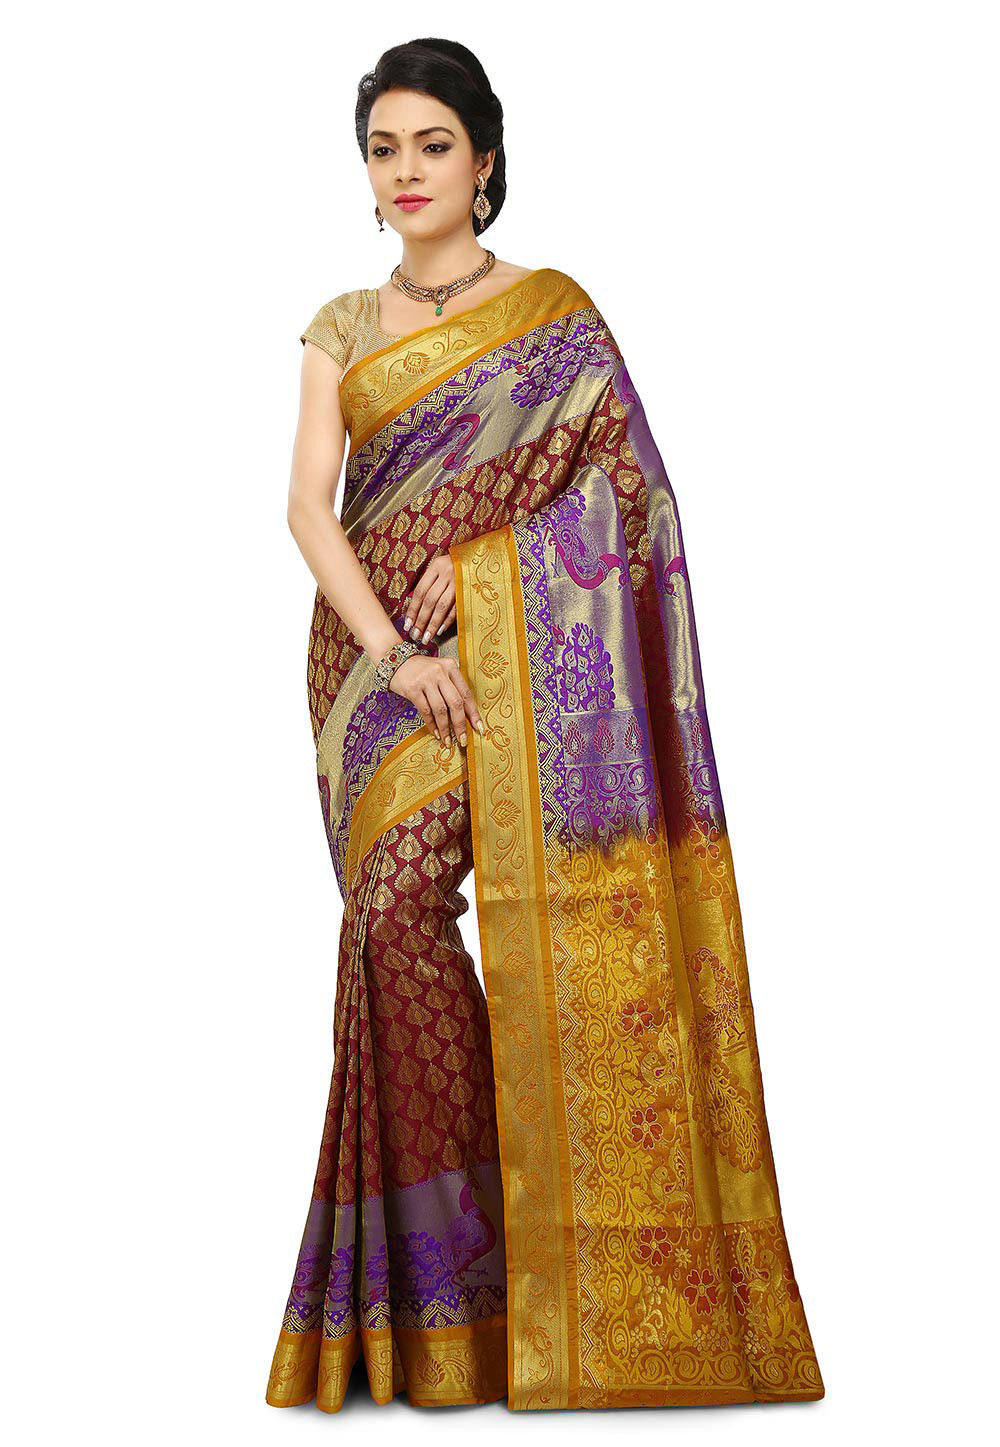 Kanchipuram Saree in Maroon